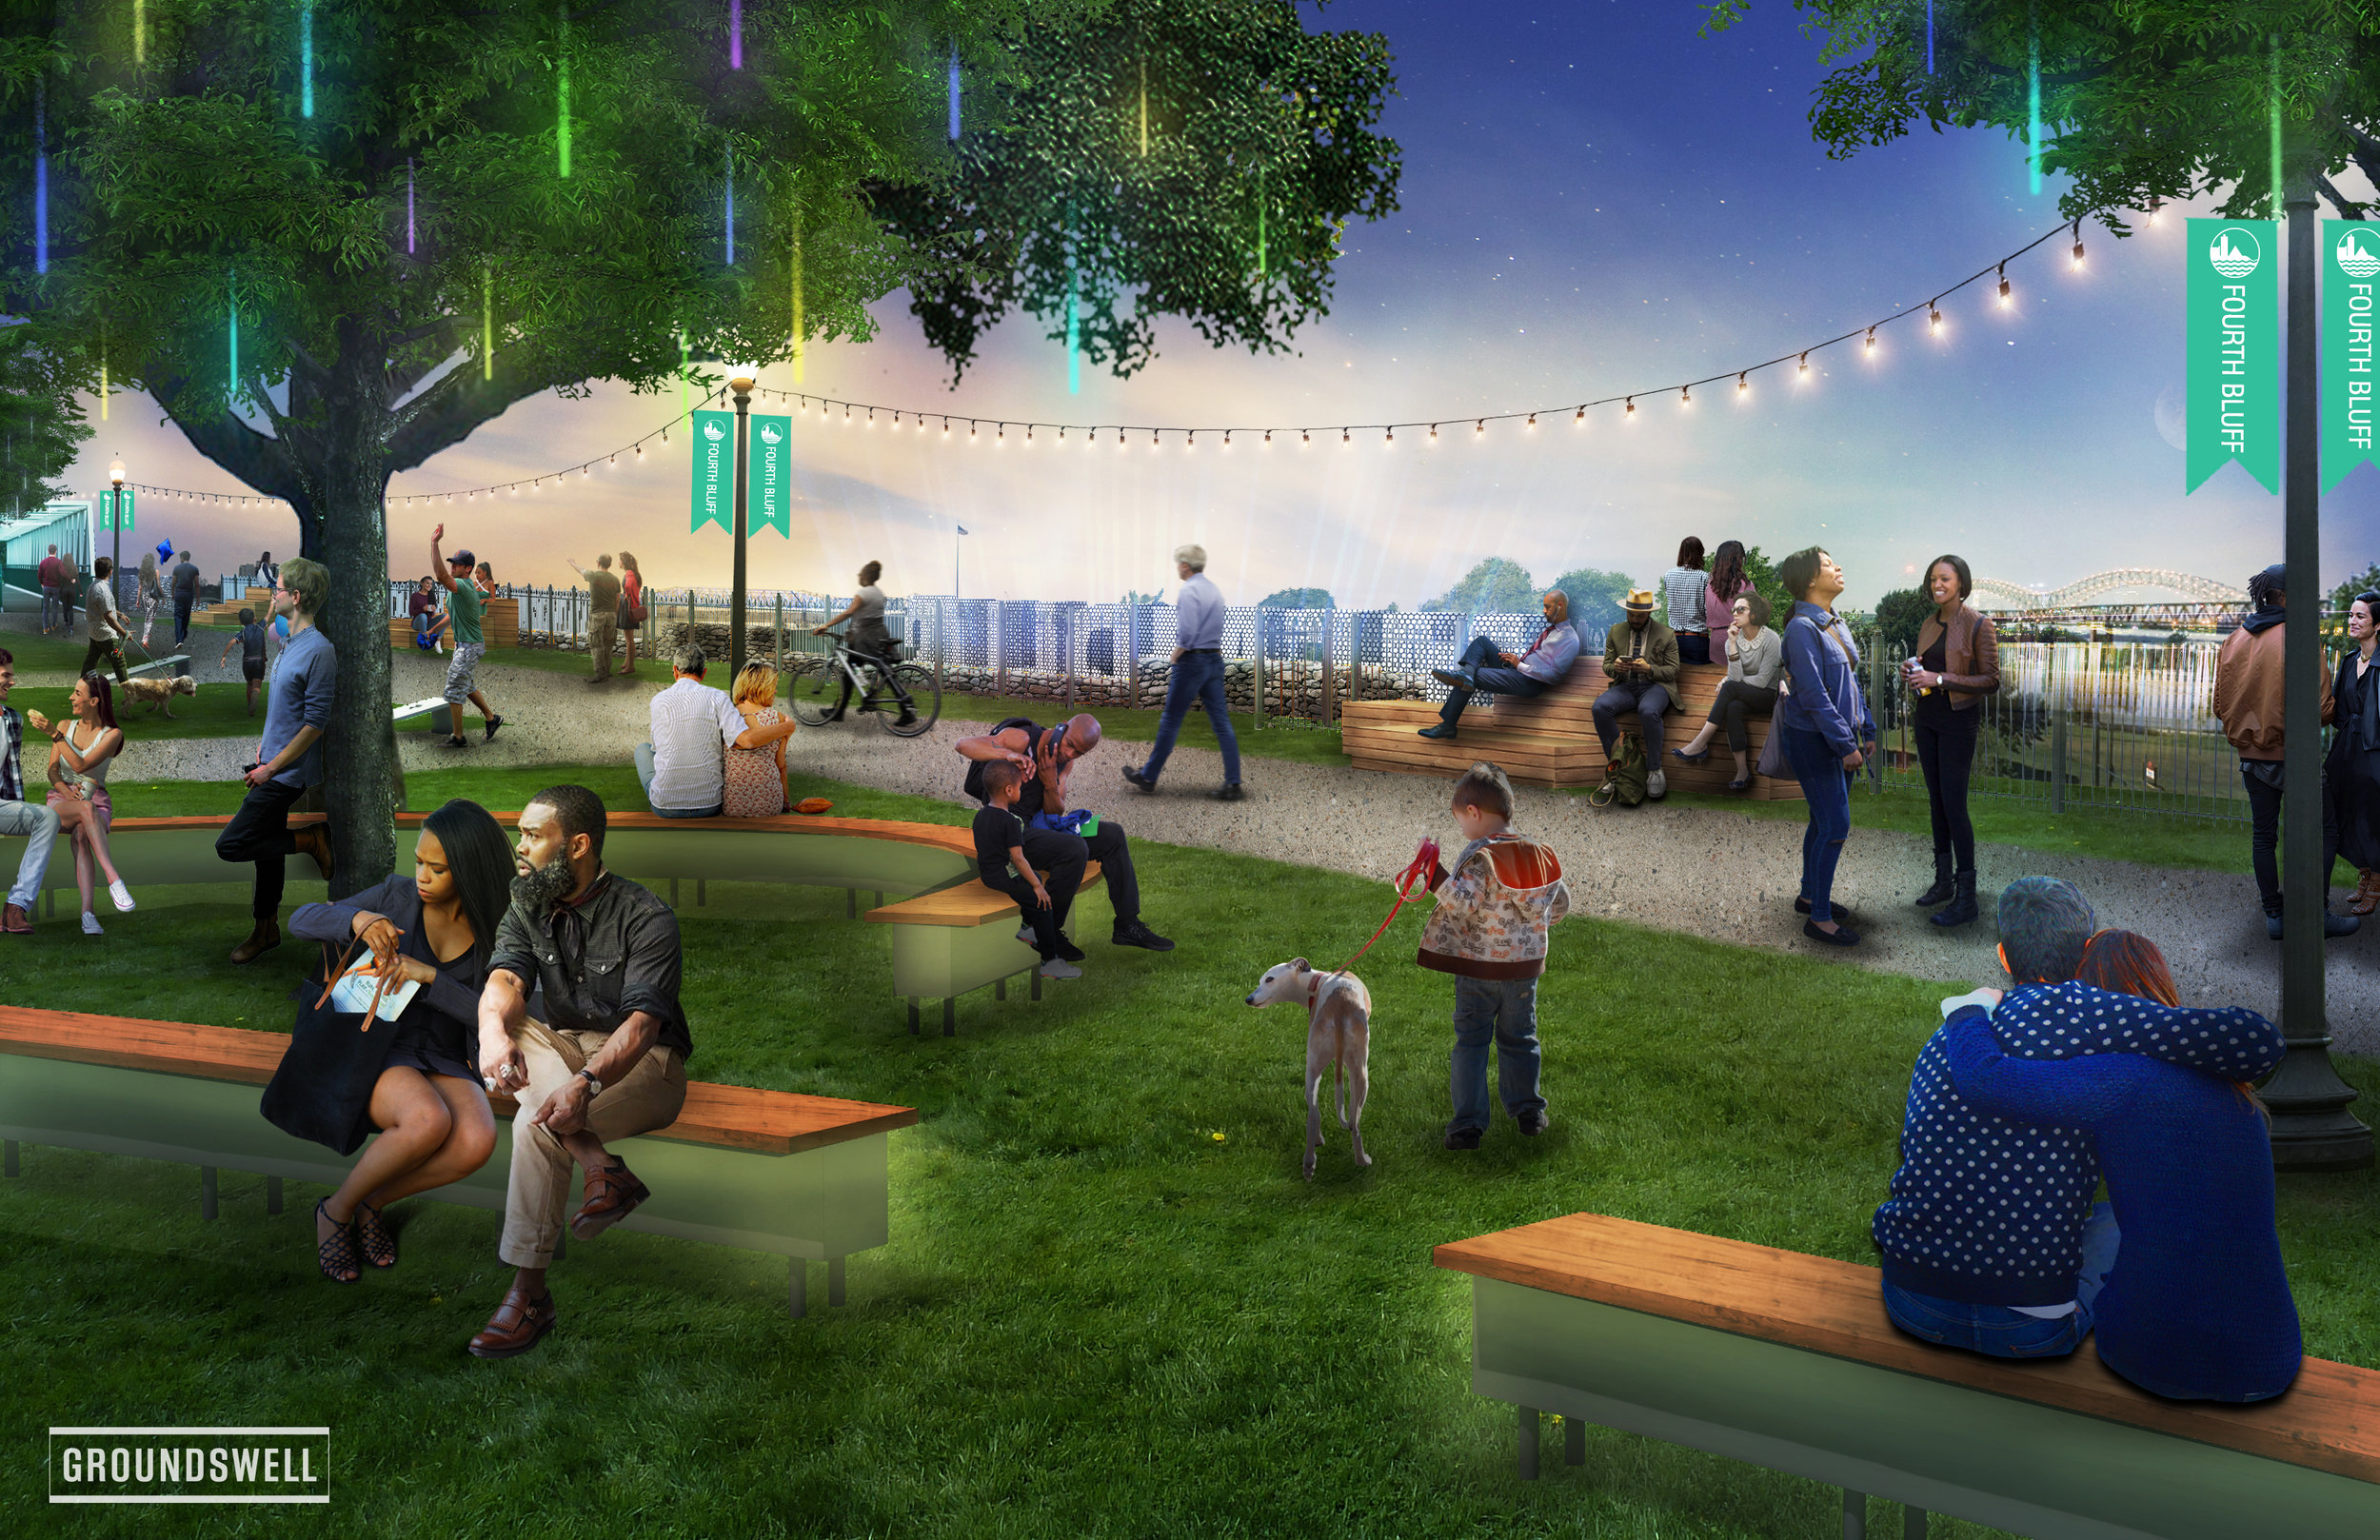 """One-of-a-Kind - Through site improvements, the addition of key amenities, and engagement through strategic programming, it will become a one-of-a-kind space for the community, one that evolves and transforms based on public input— a true """"design-from-the-bottom-up"""" approach."""